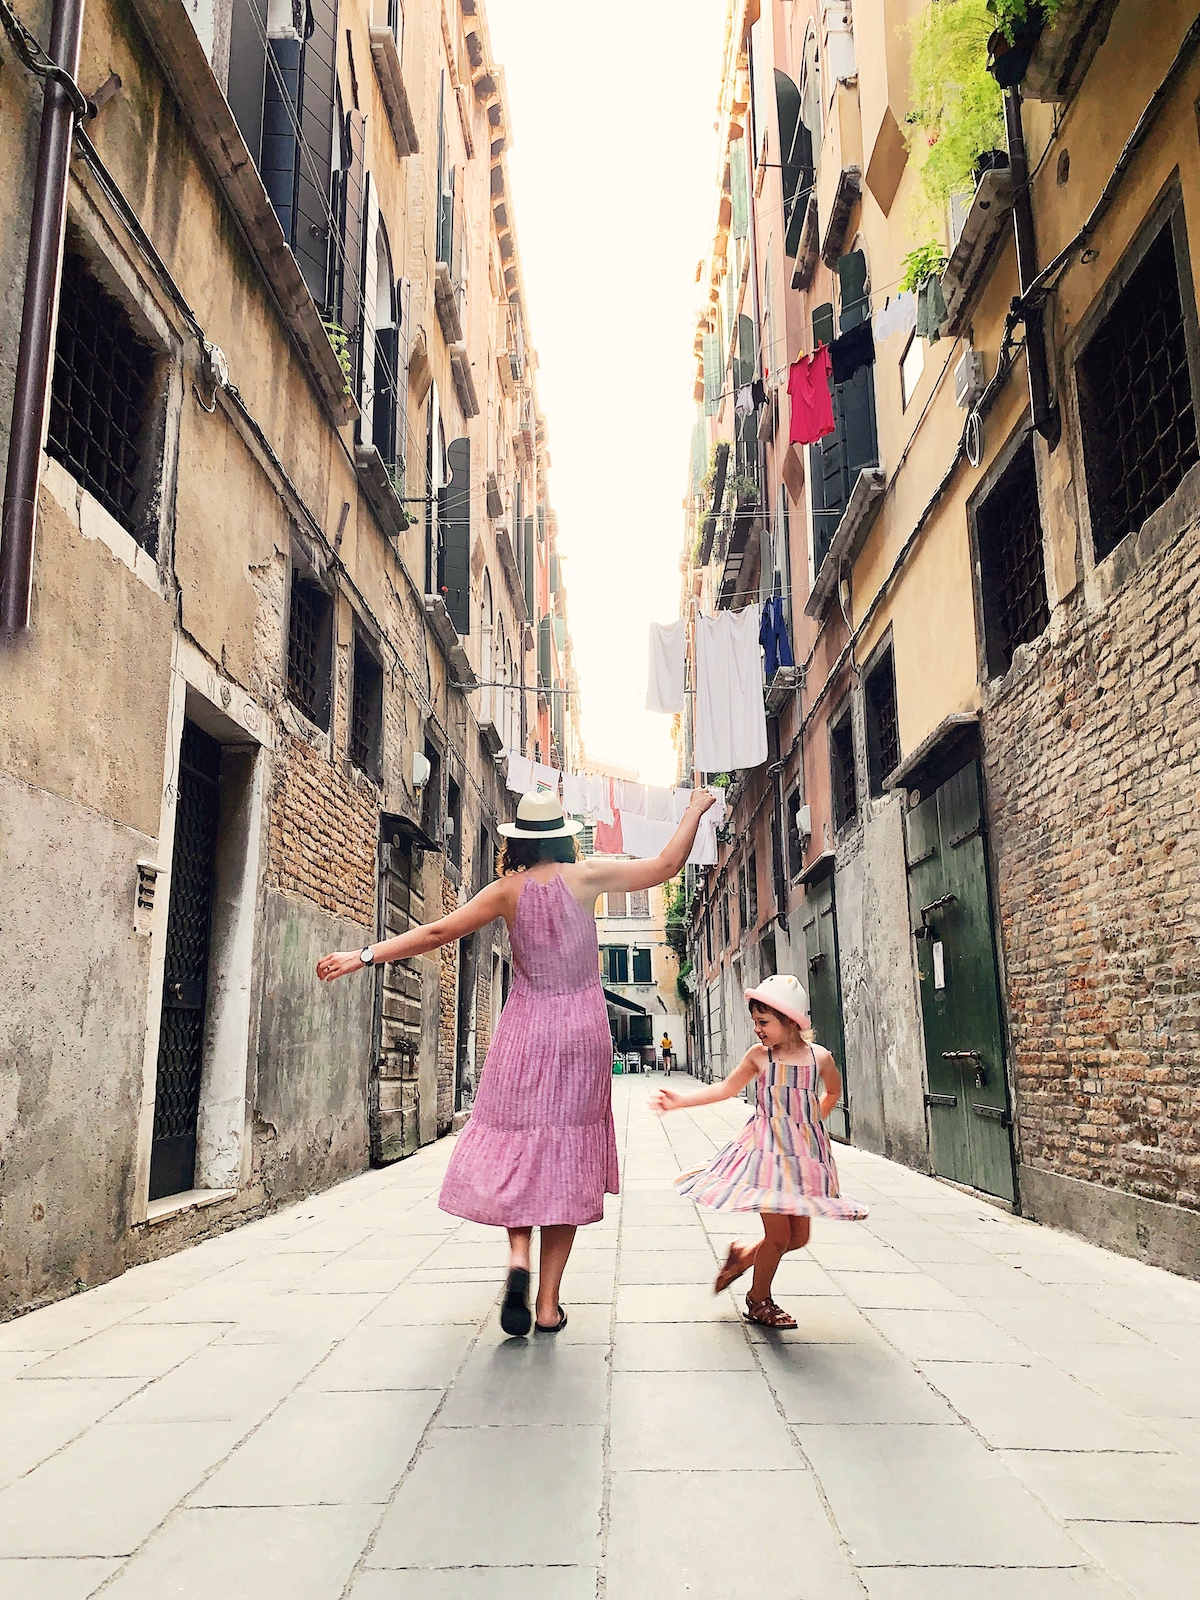 A mother and daughter dance in the streets of Italy